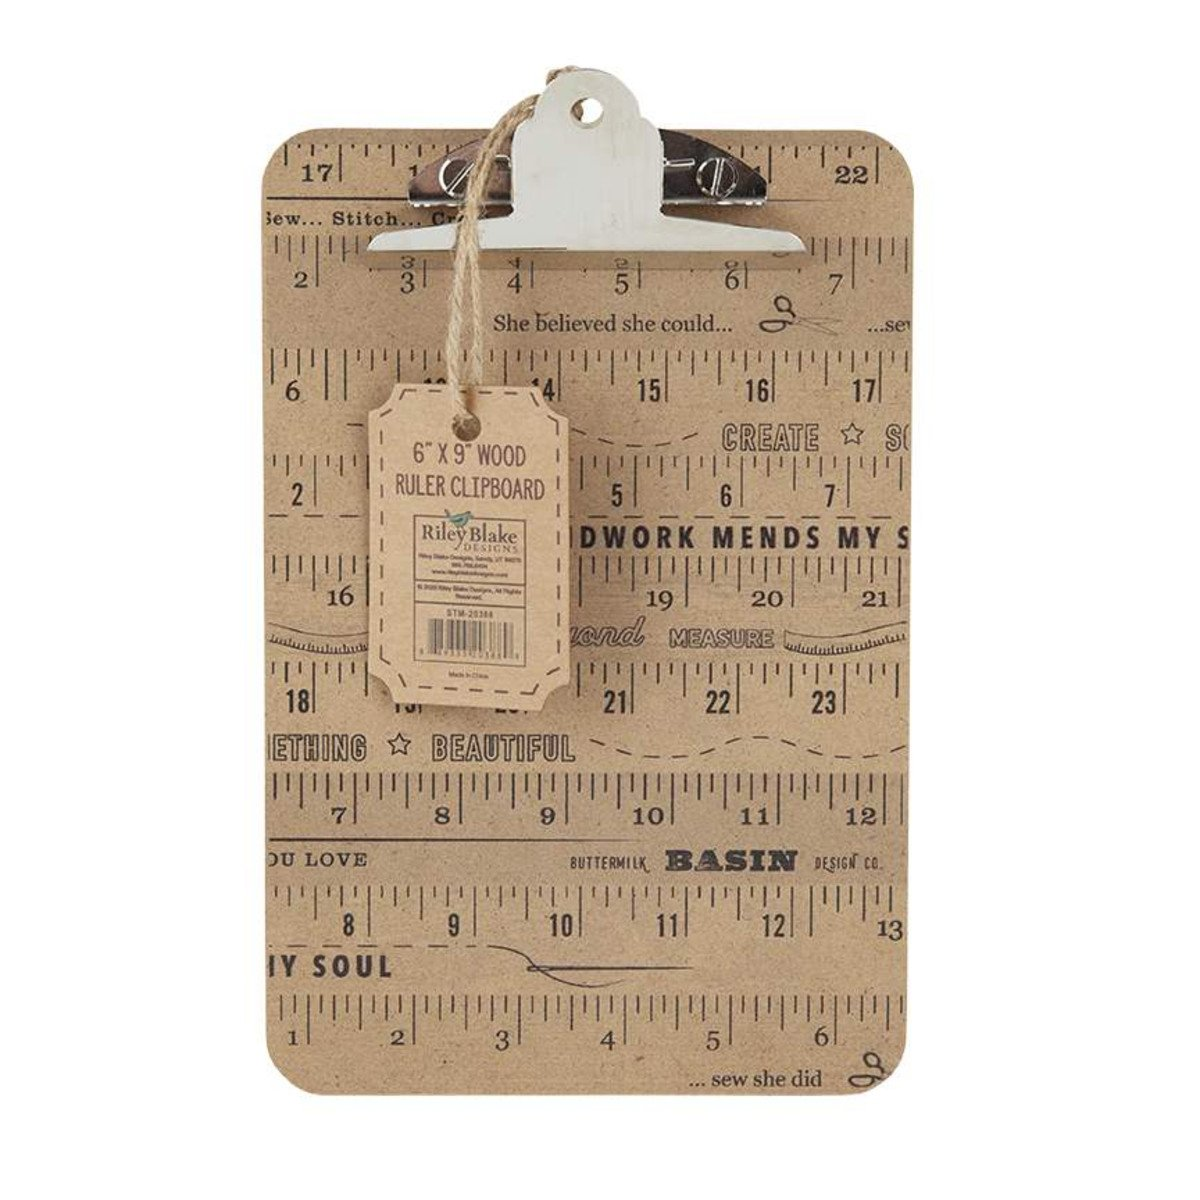 Stacy West | Buttermilk Basin Wood Ruler Clipboard Small ST-20388